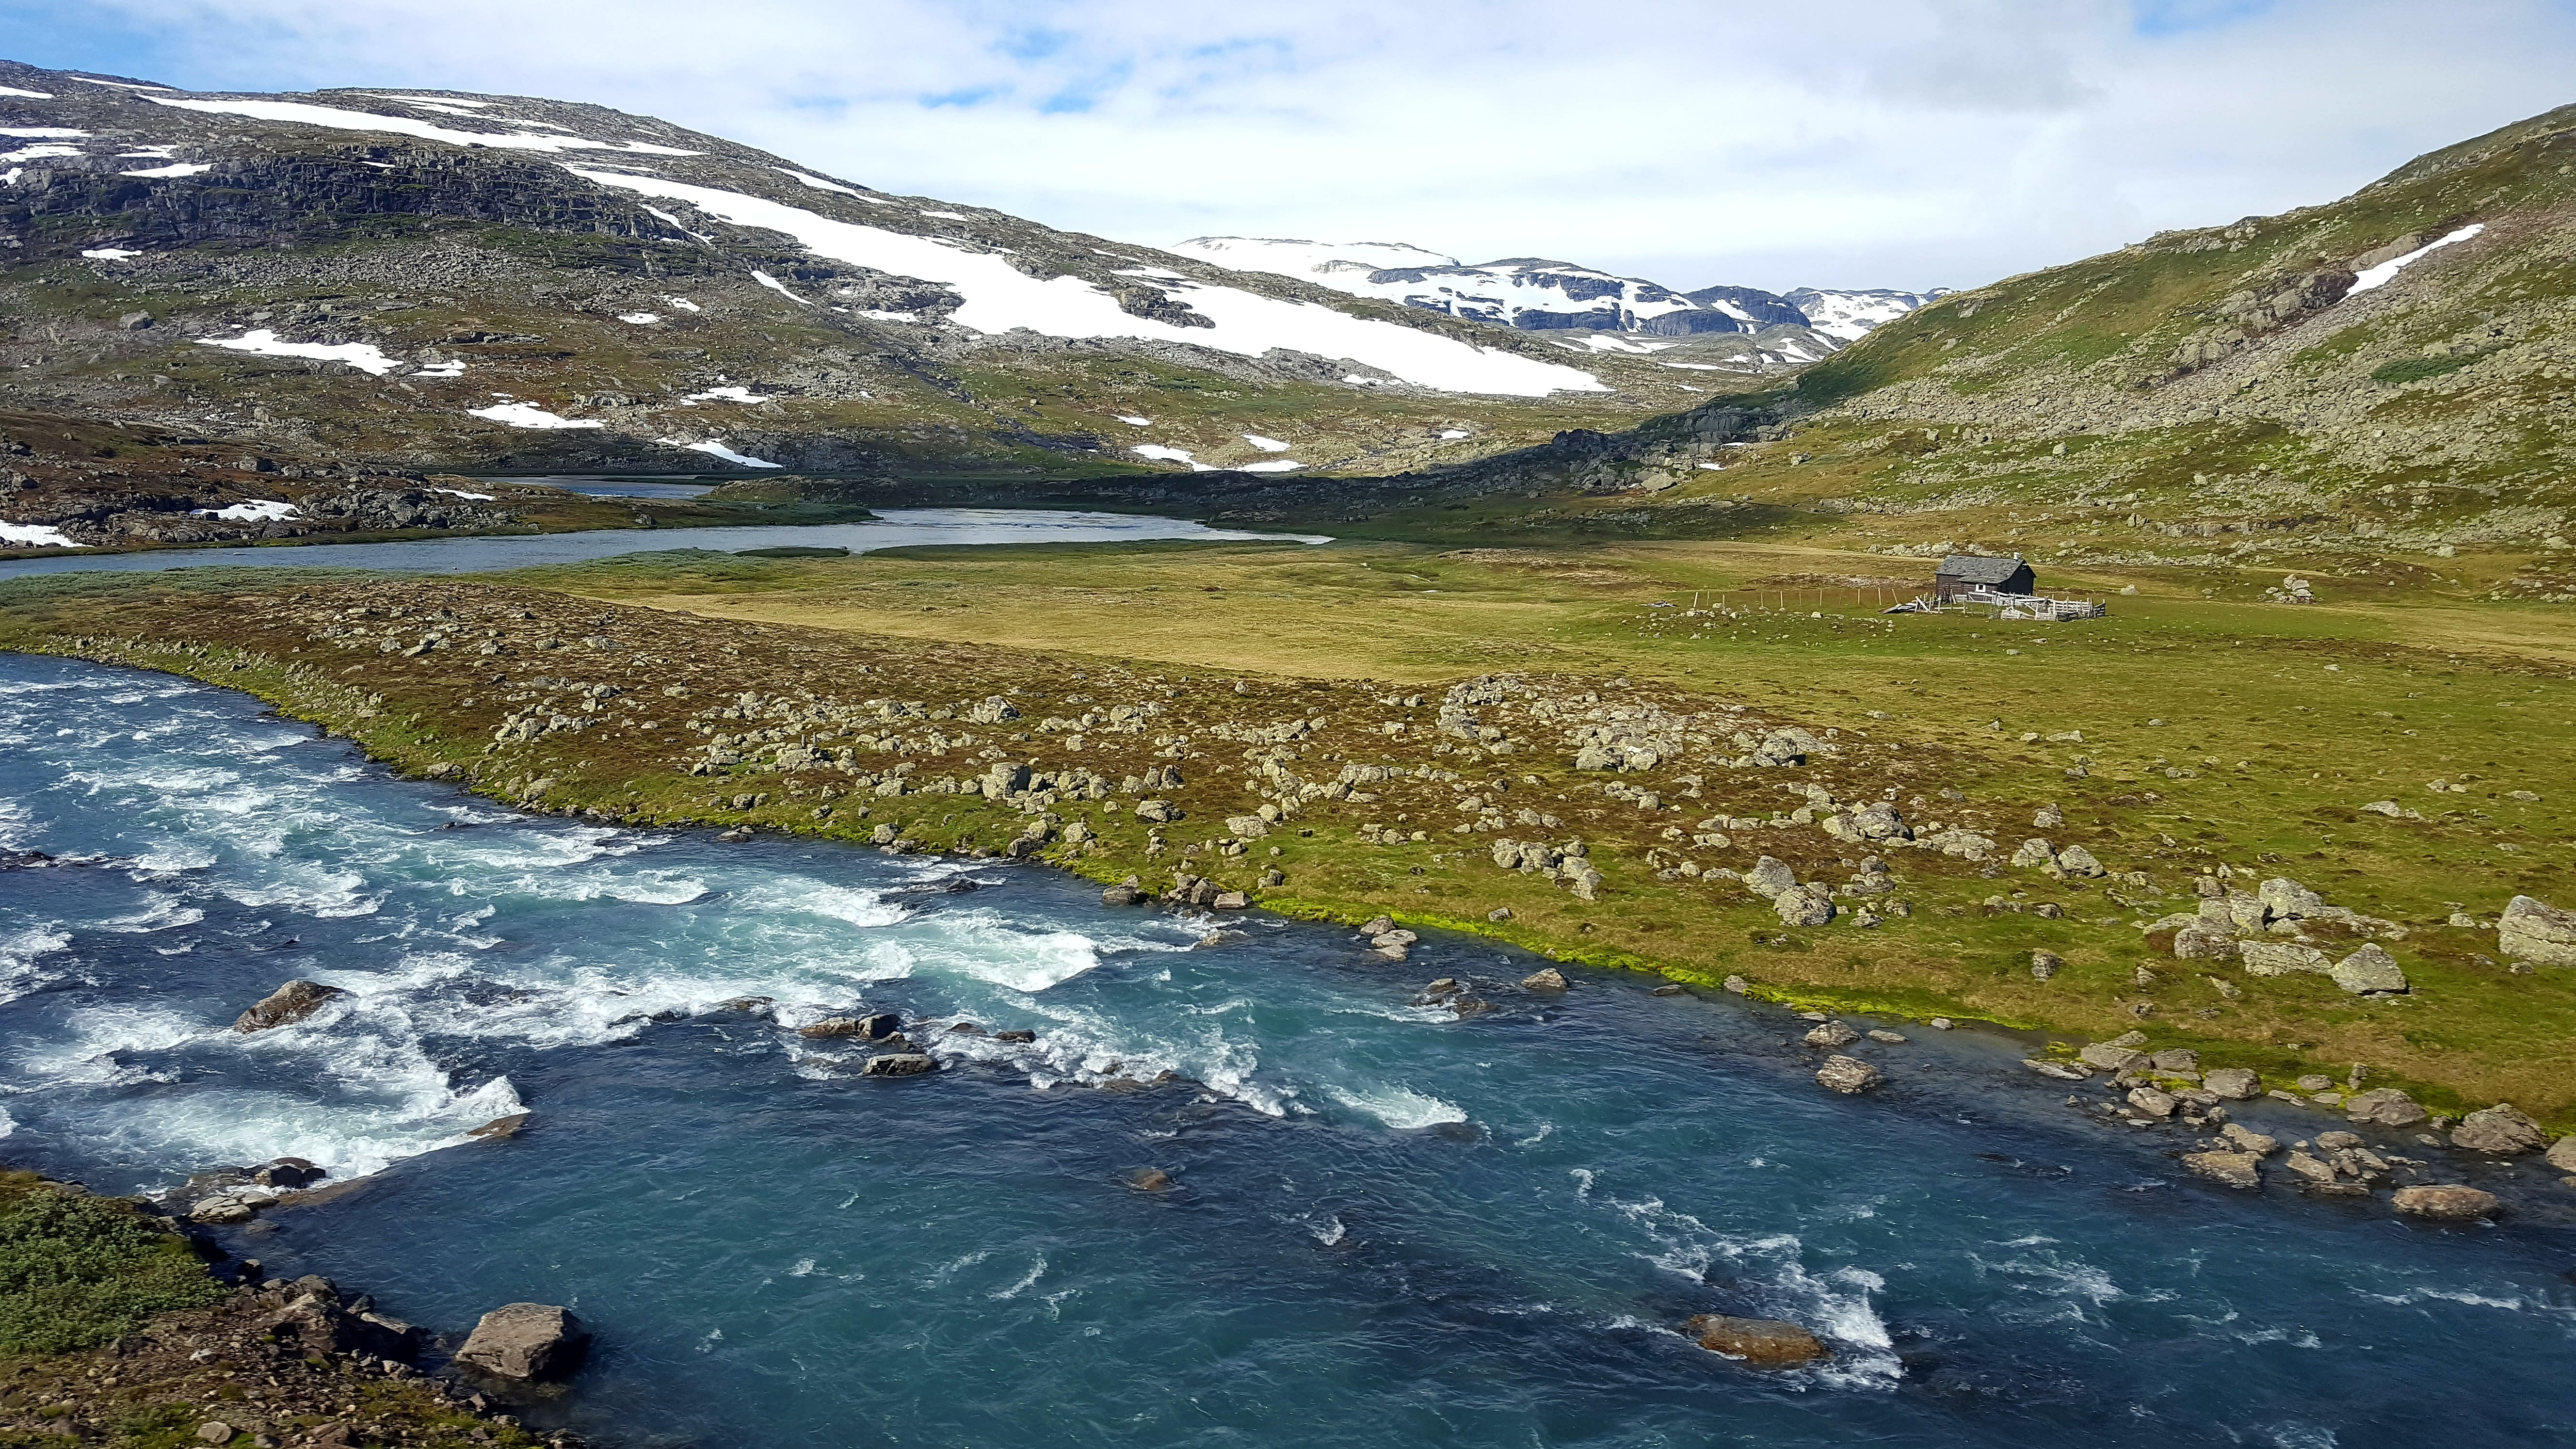 View of the flowing river and rolling hills on a cloudy day at Myrdal